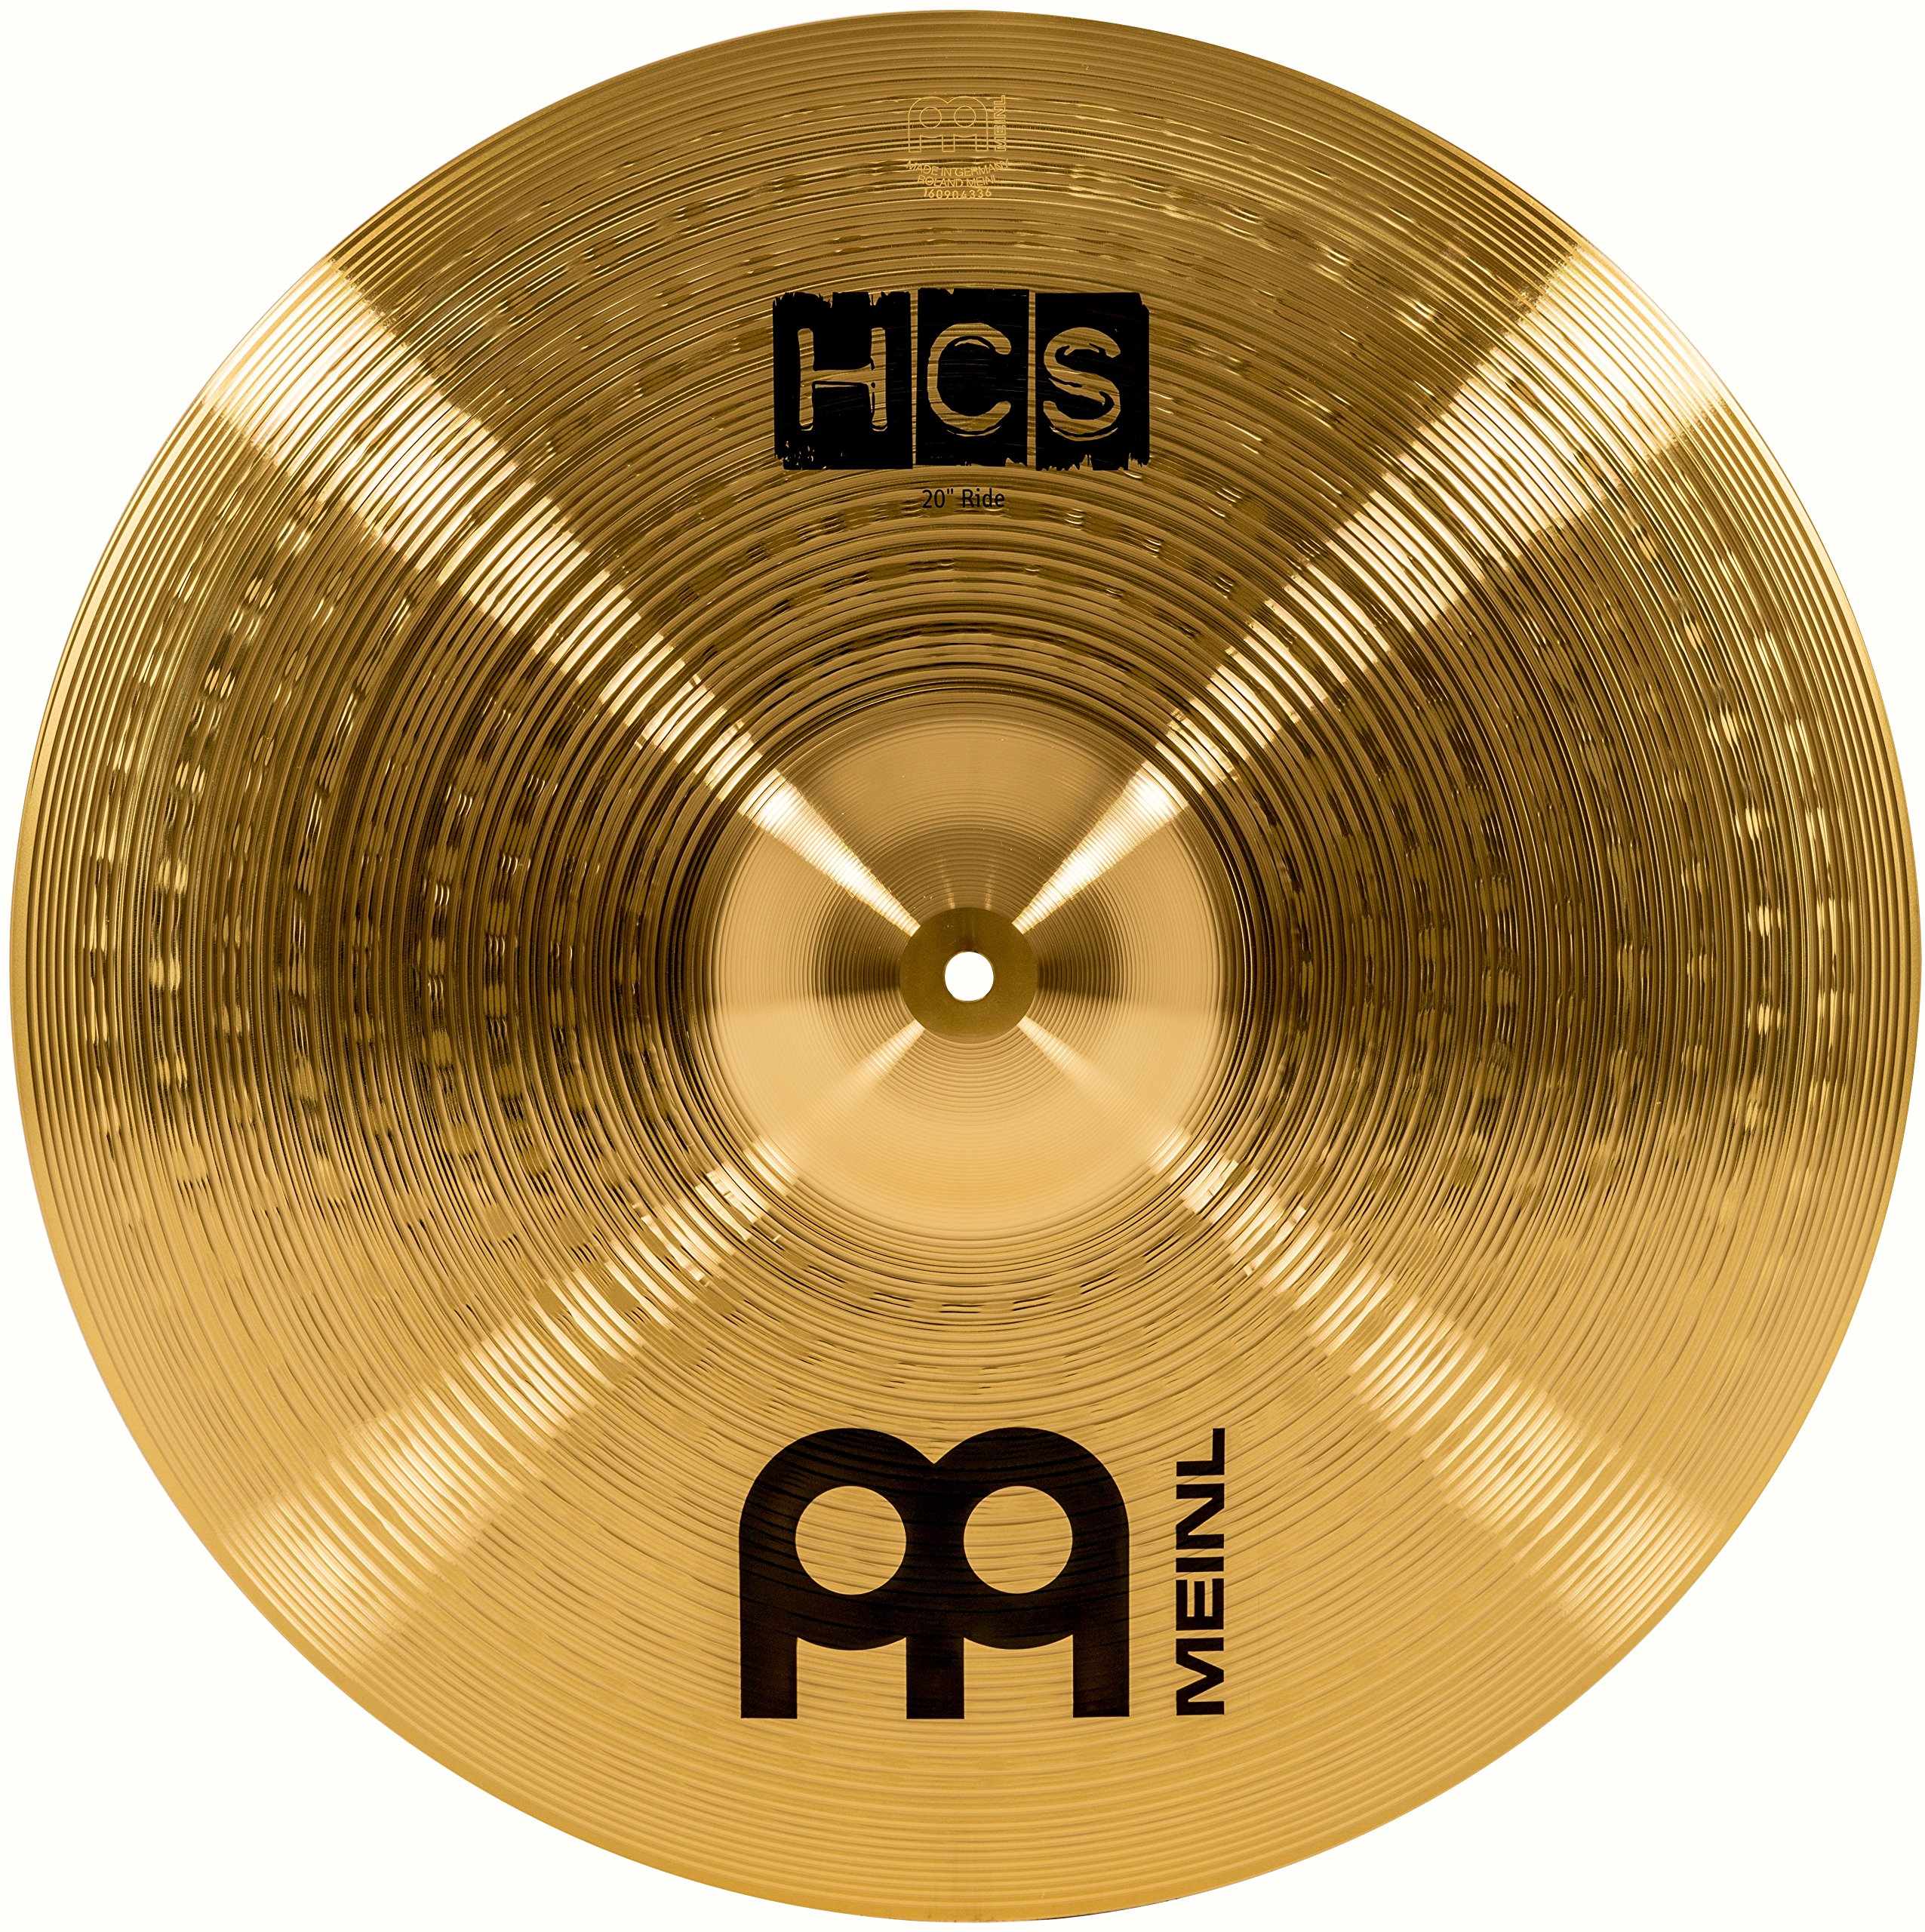 Meinl 20'' Ride Cymbal - HCS Traditional Finish Brass for Drum Set, Made in Germany, 2-YEAR WARRANTY (HCS20R) by Meinl Cymbals